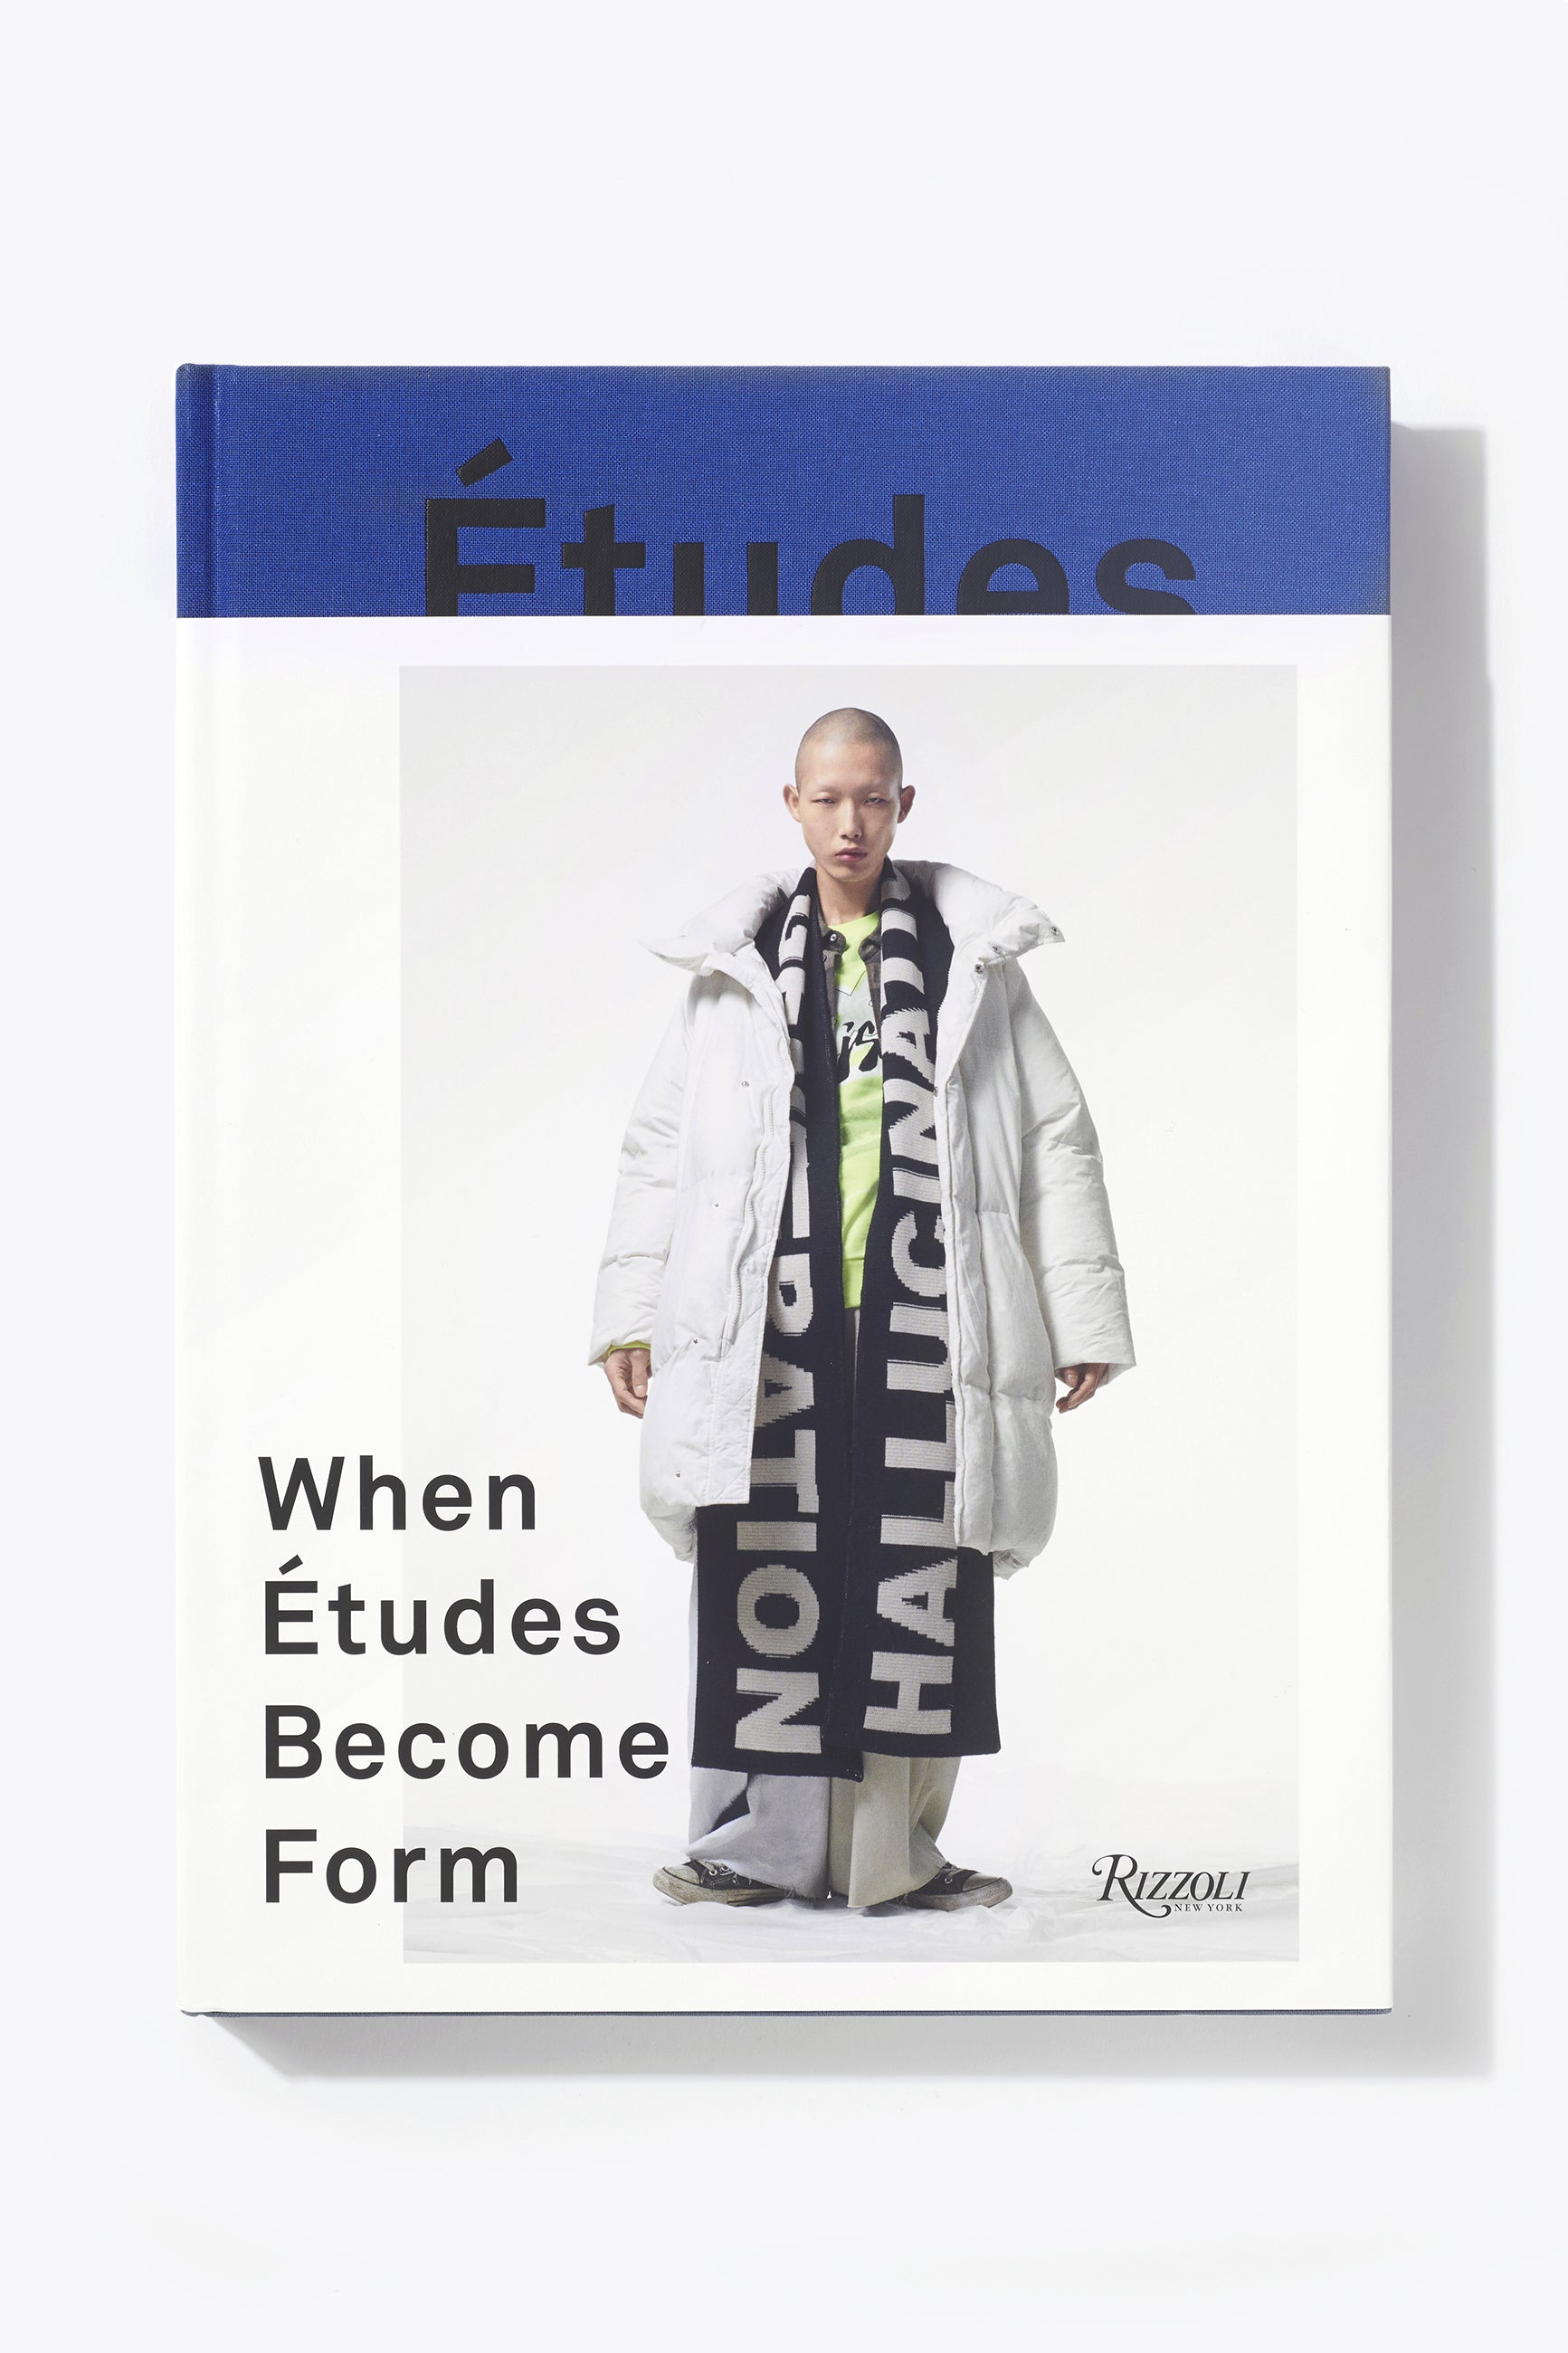 Études - WHEN ÉTUDES BECOME FORM